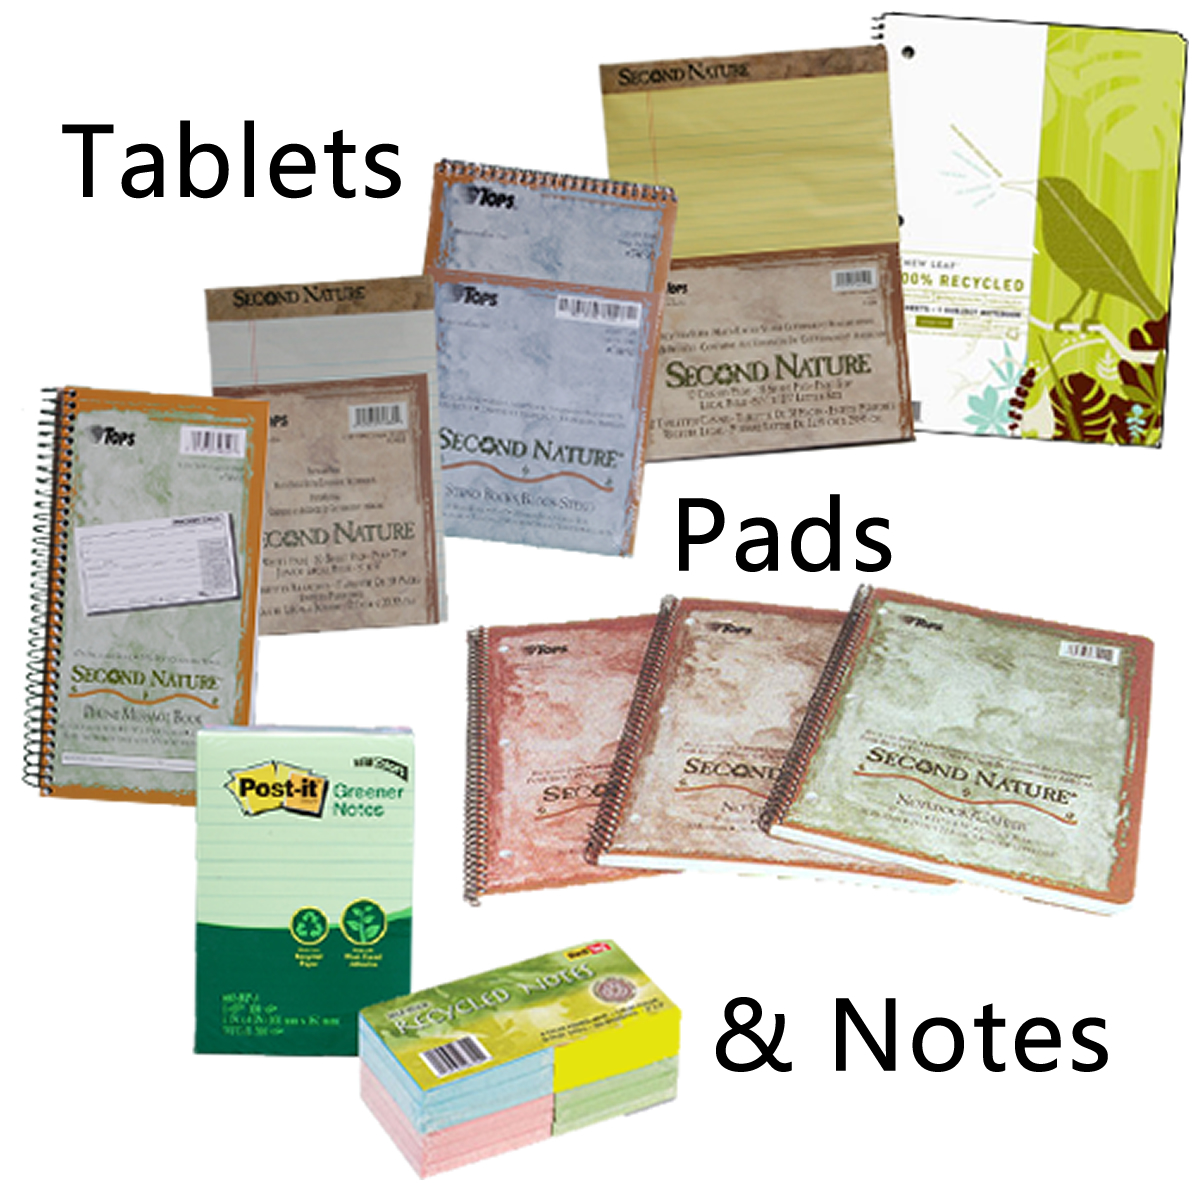 Tablets, Pads & Notes